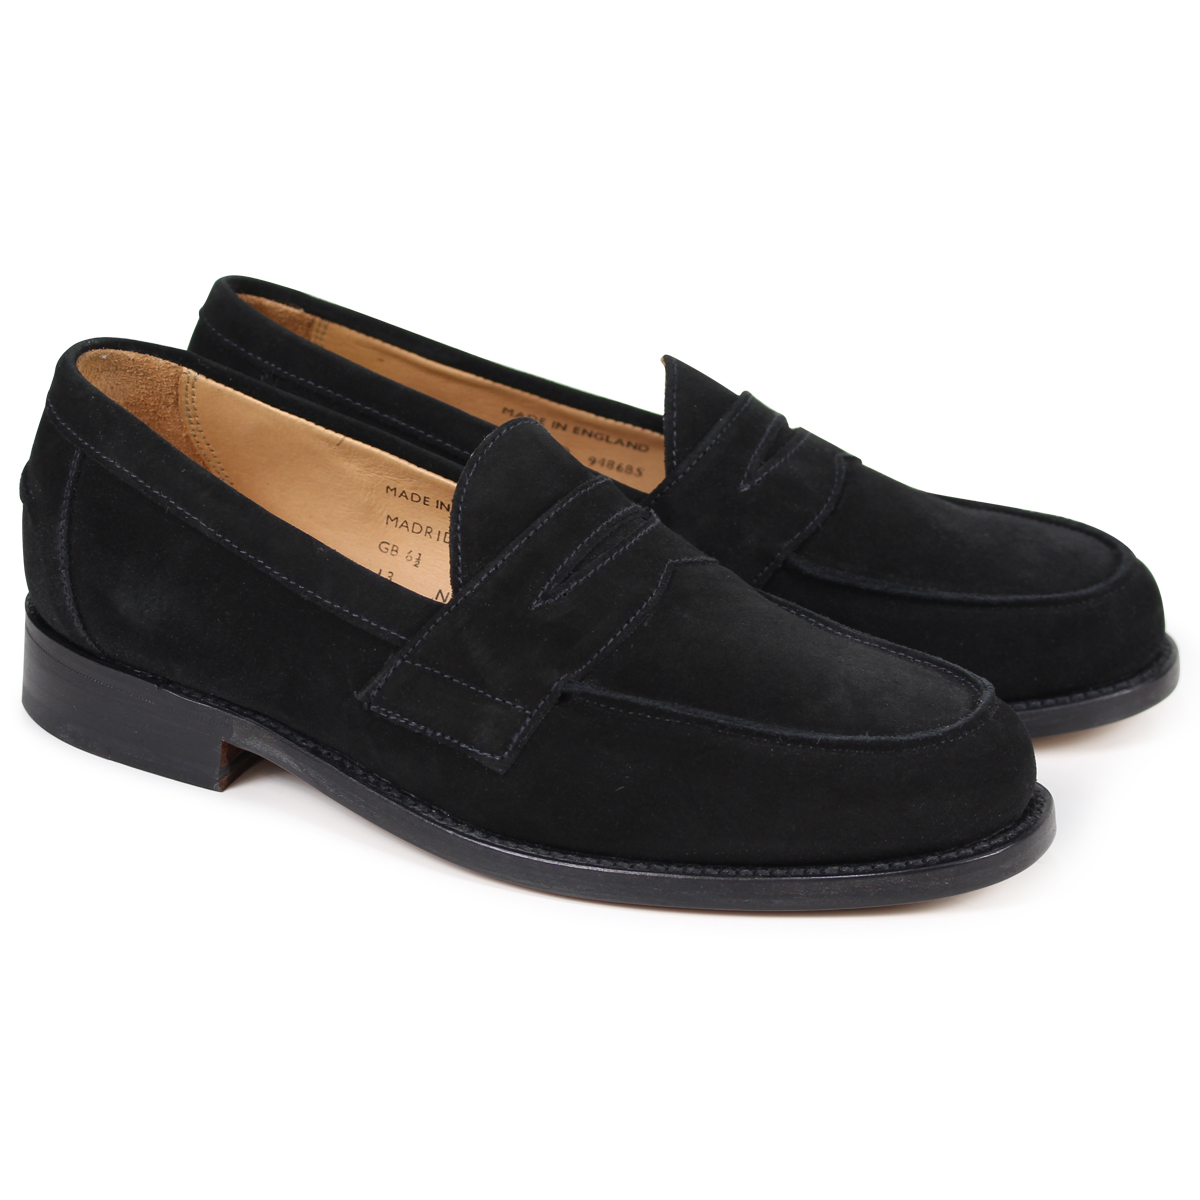 ca199b1c8cf5 SANDERS MADRID PENNY LOAFER Sanders shoes penny loafer men suede black  9486BS  3 22 Shinnyu load